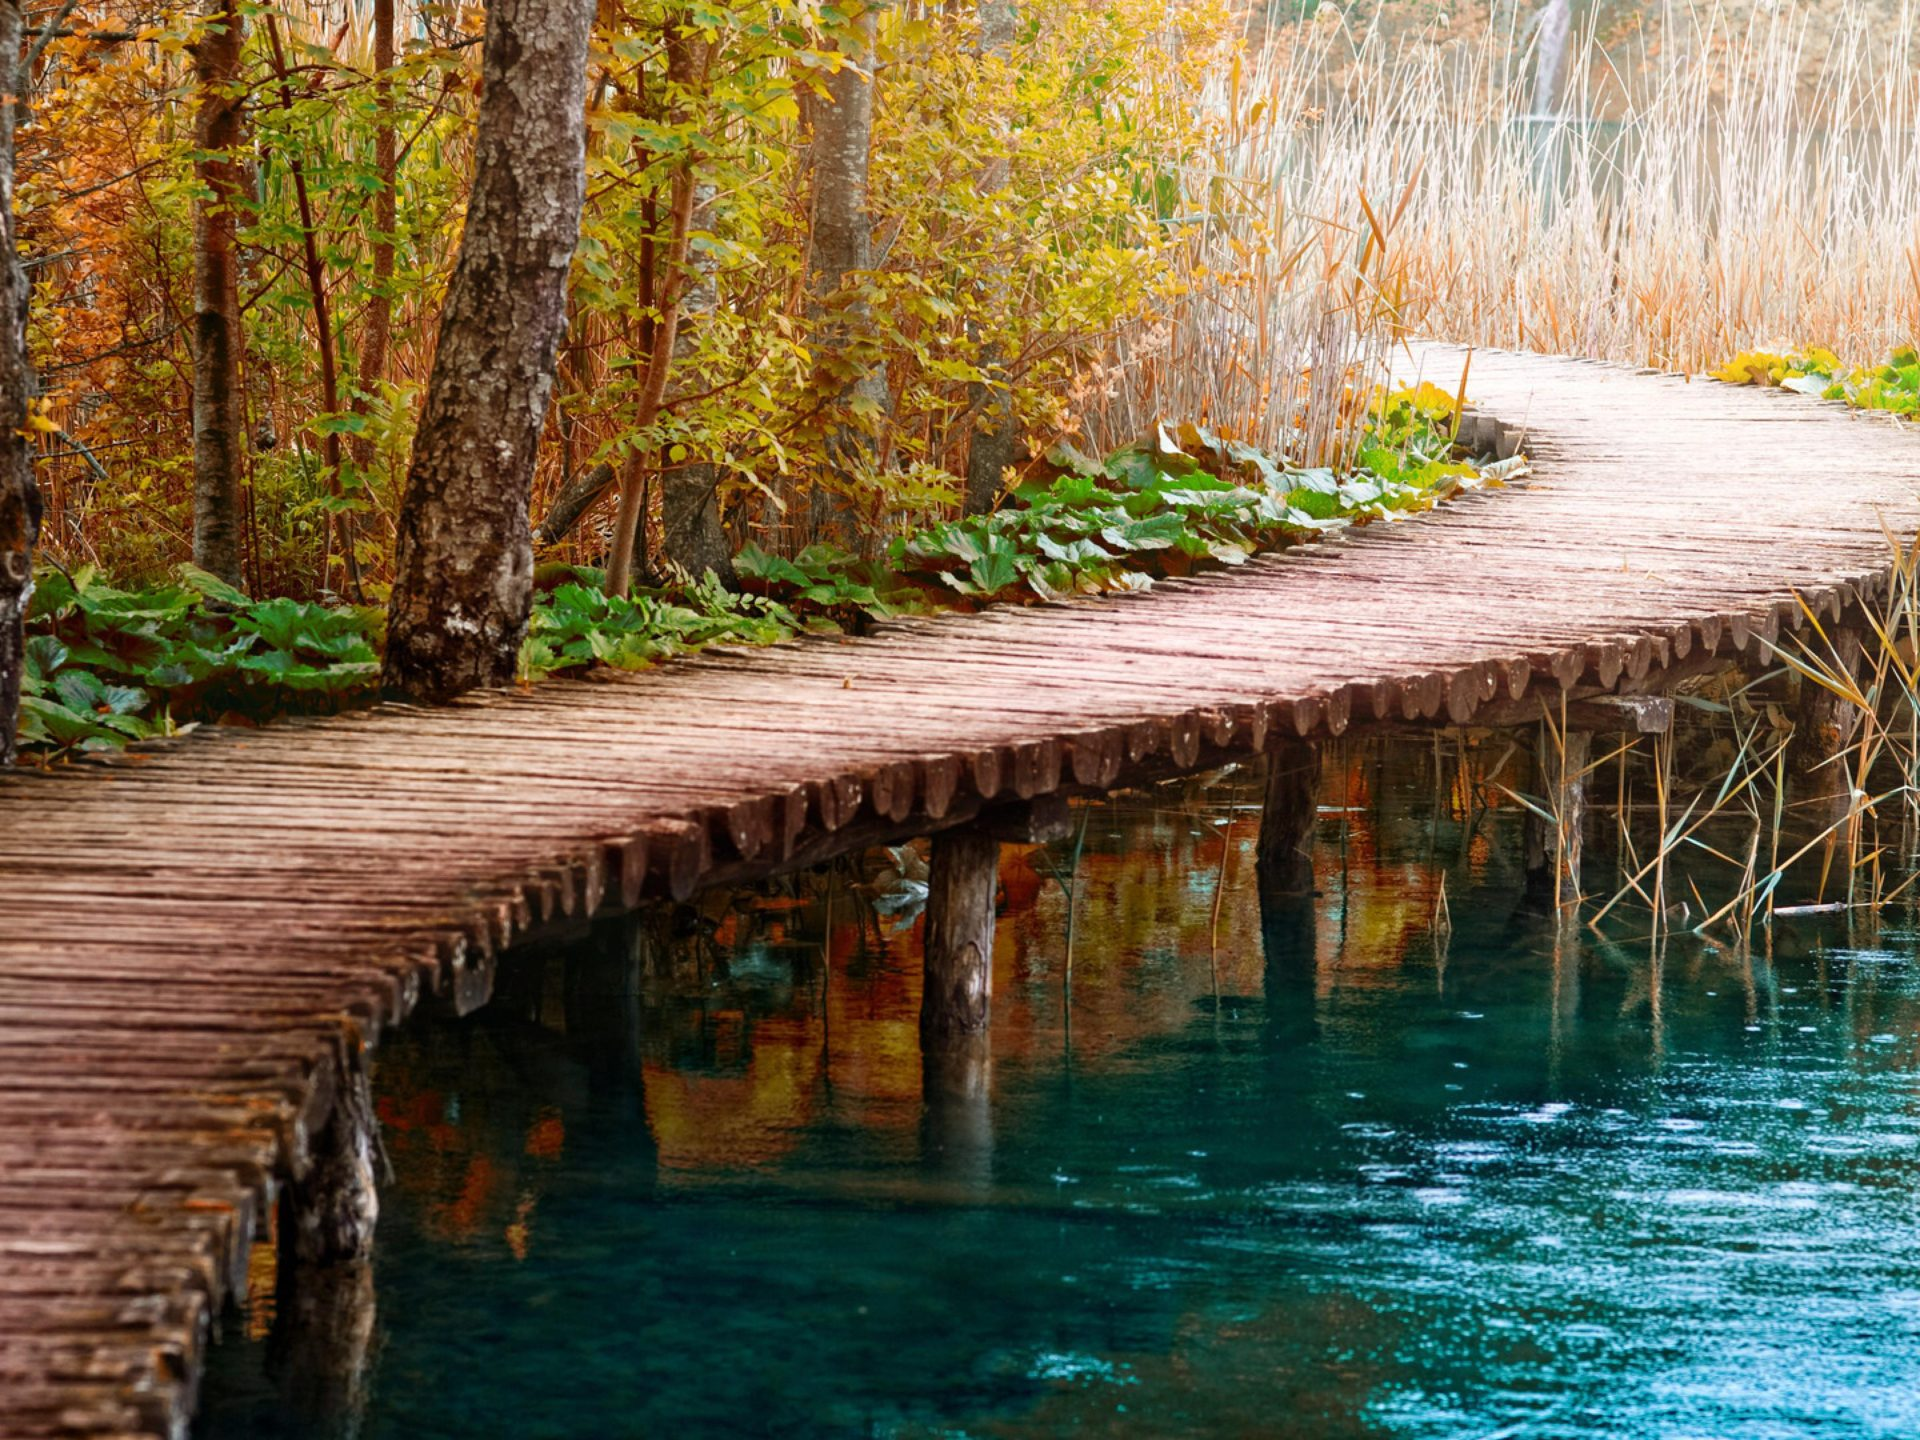 Fall Forest Wallpaper Autumn Background River Wooden Path Bridge Cane Reeds Dry